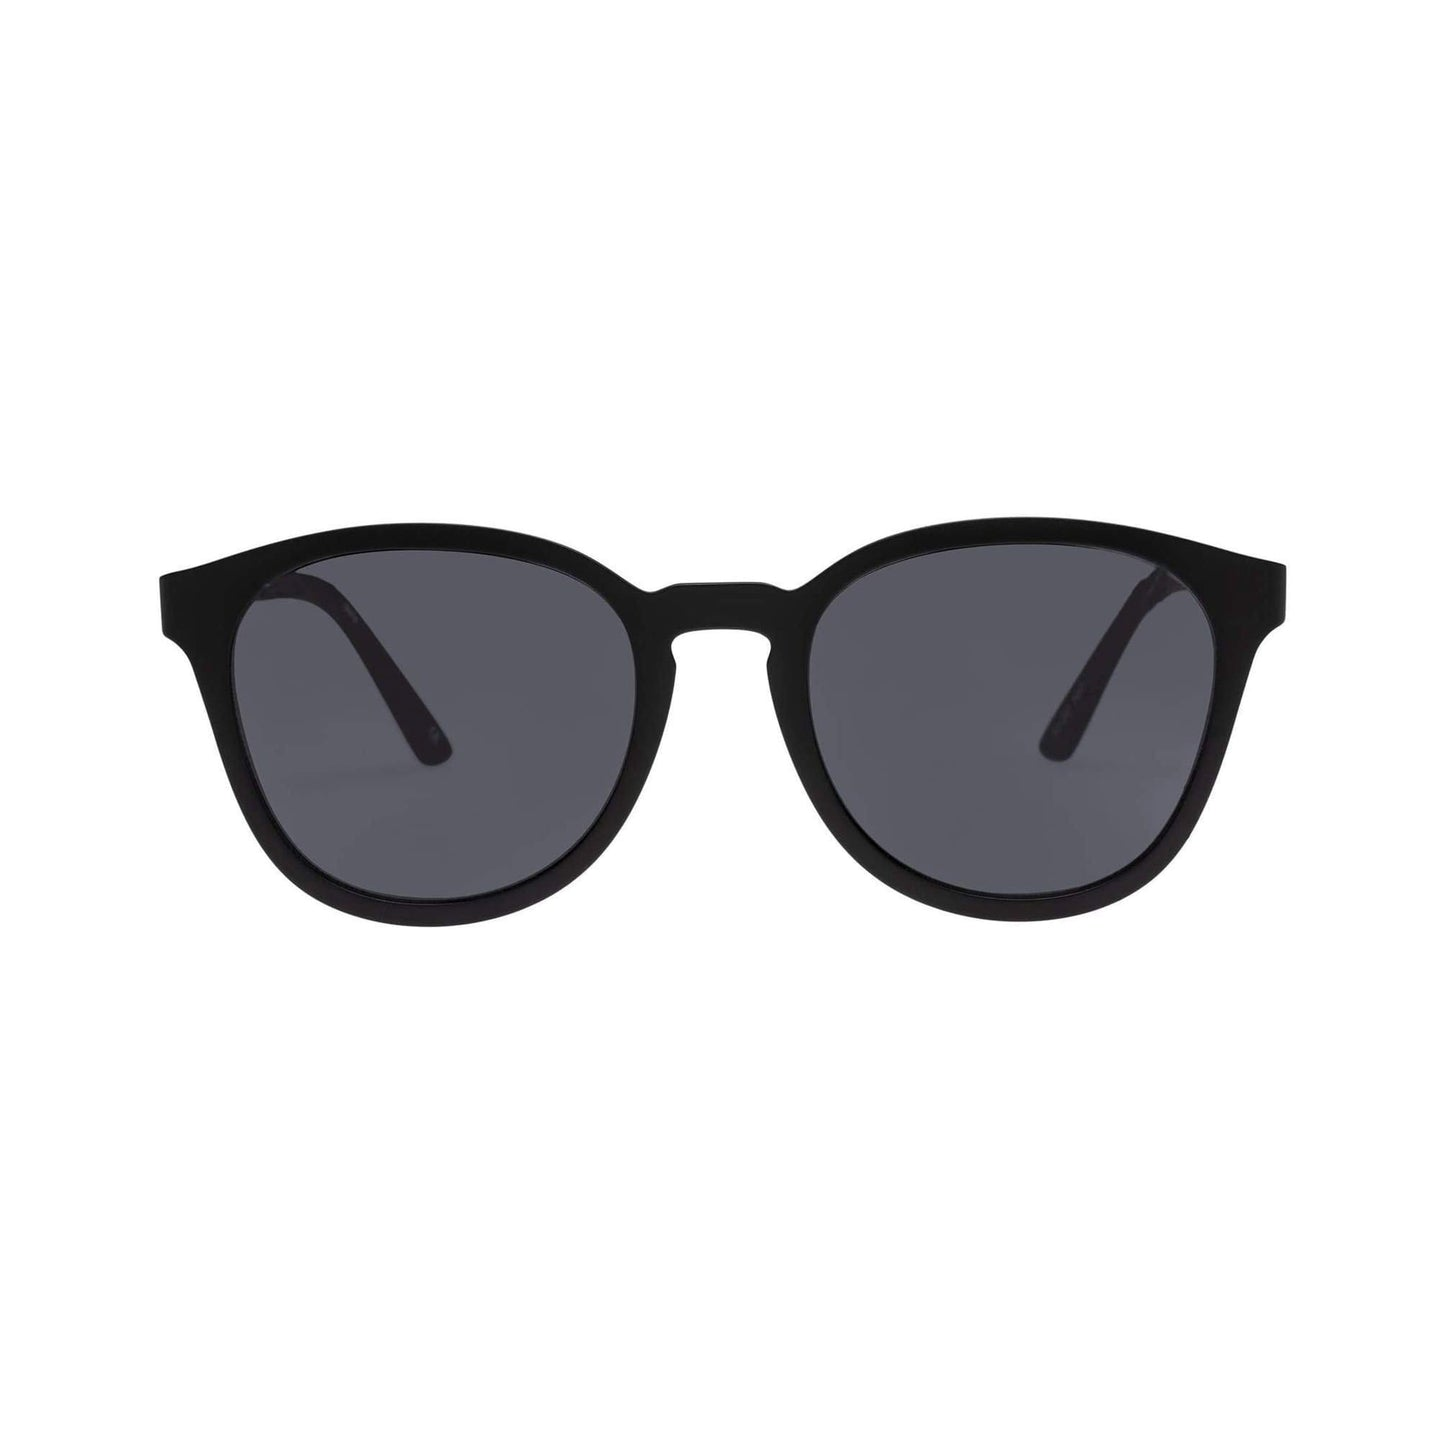 Le Specs Renegade / Neighborhood Goods